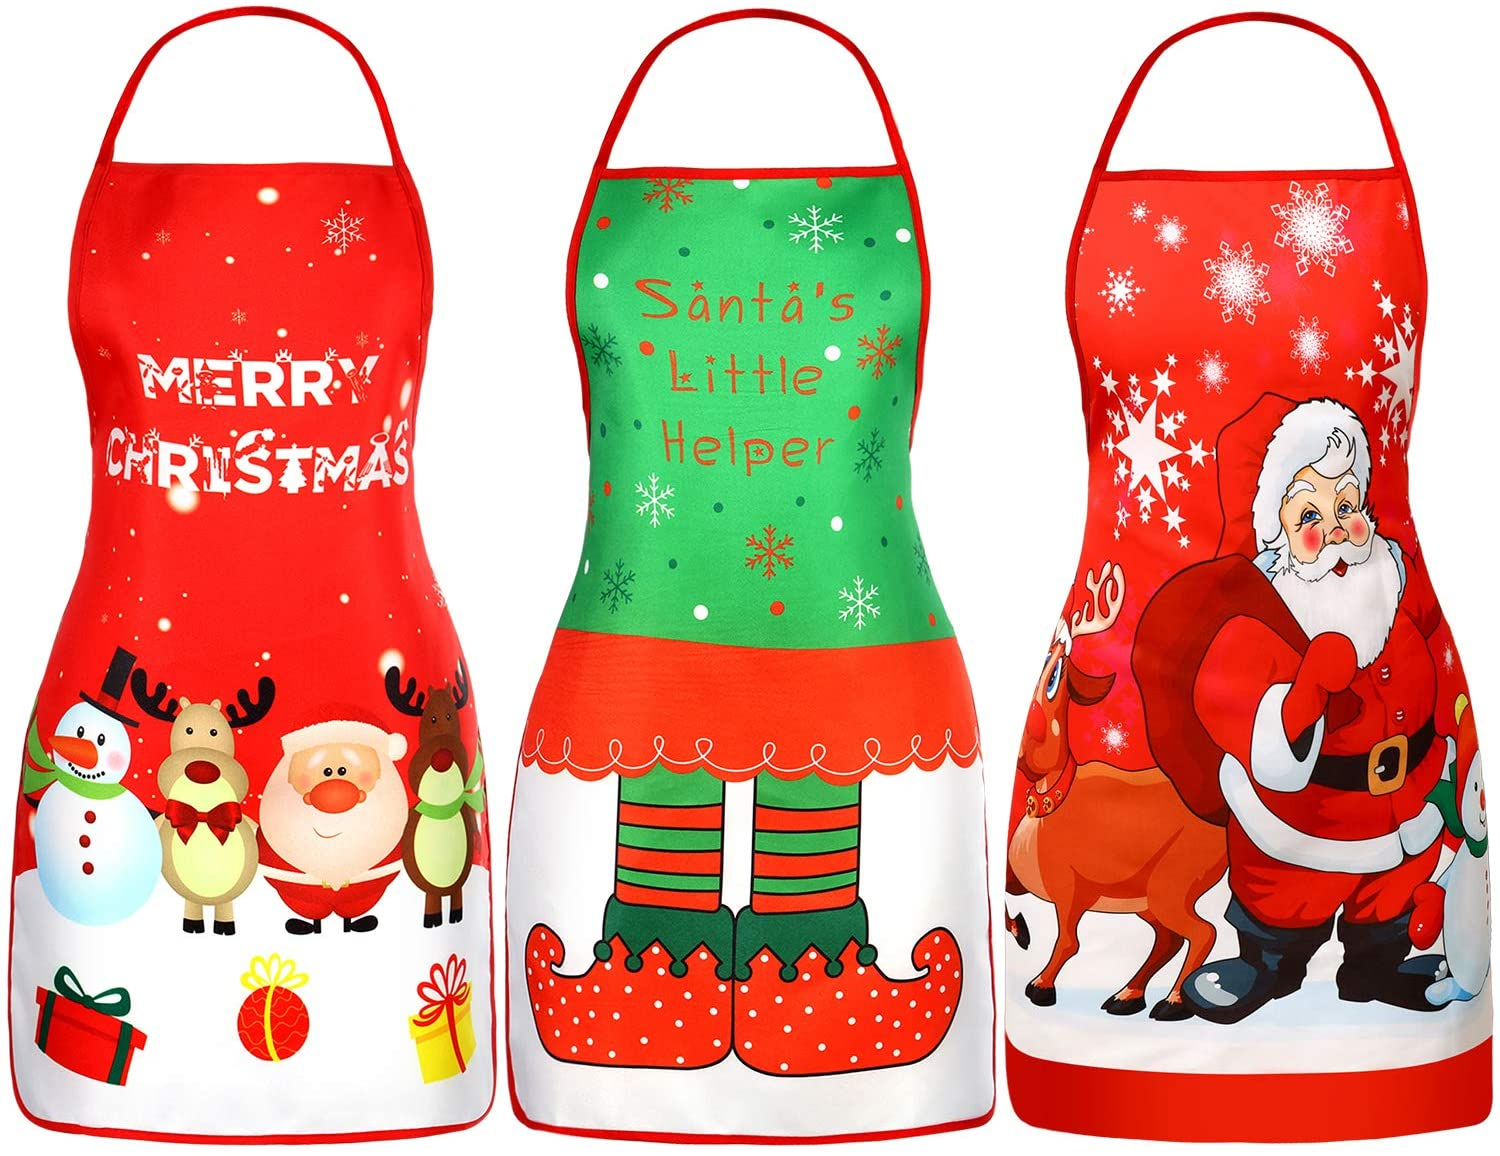 Geyoga 3 Pieces Christmas Aprons Adult Elf Aprons Santa Apron Adjustable Kitchen Cooking Apron for Christmas Party Chef Cooking Restaurant House Cleaning Gardening Home